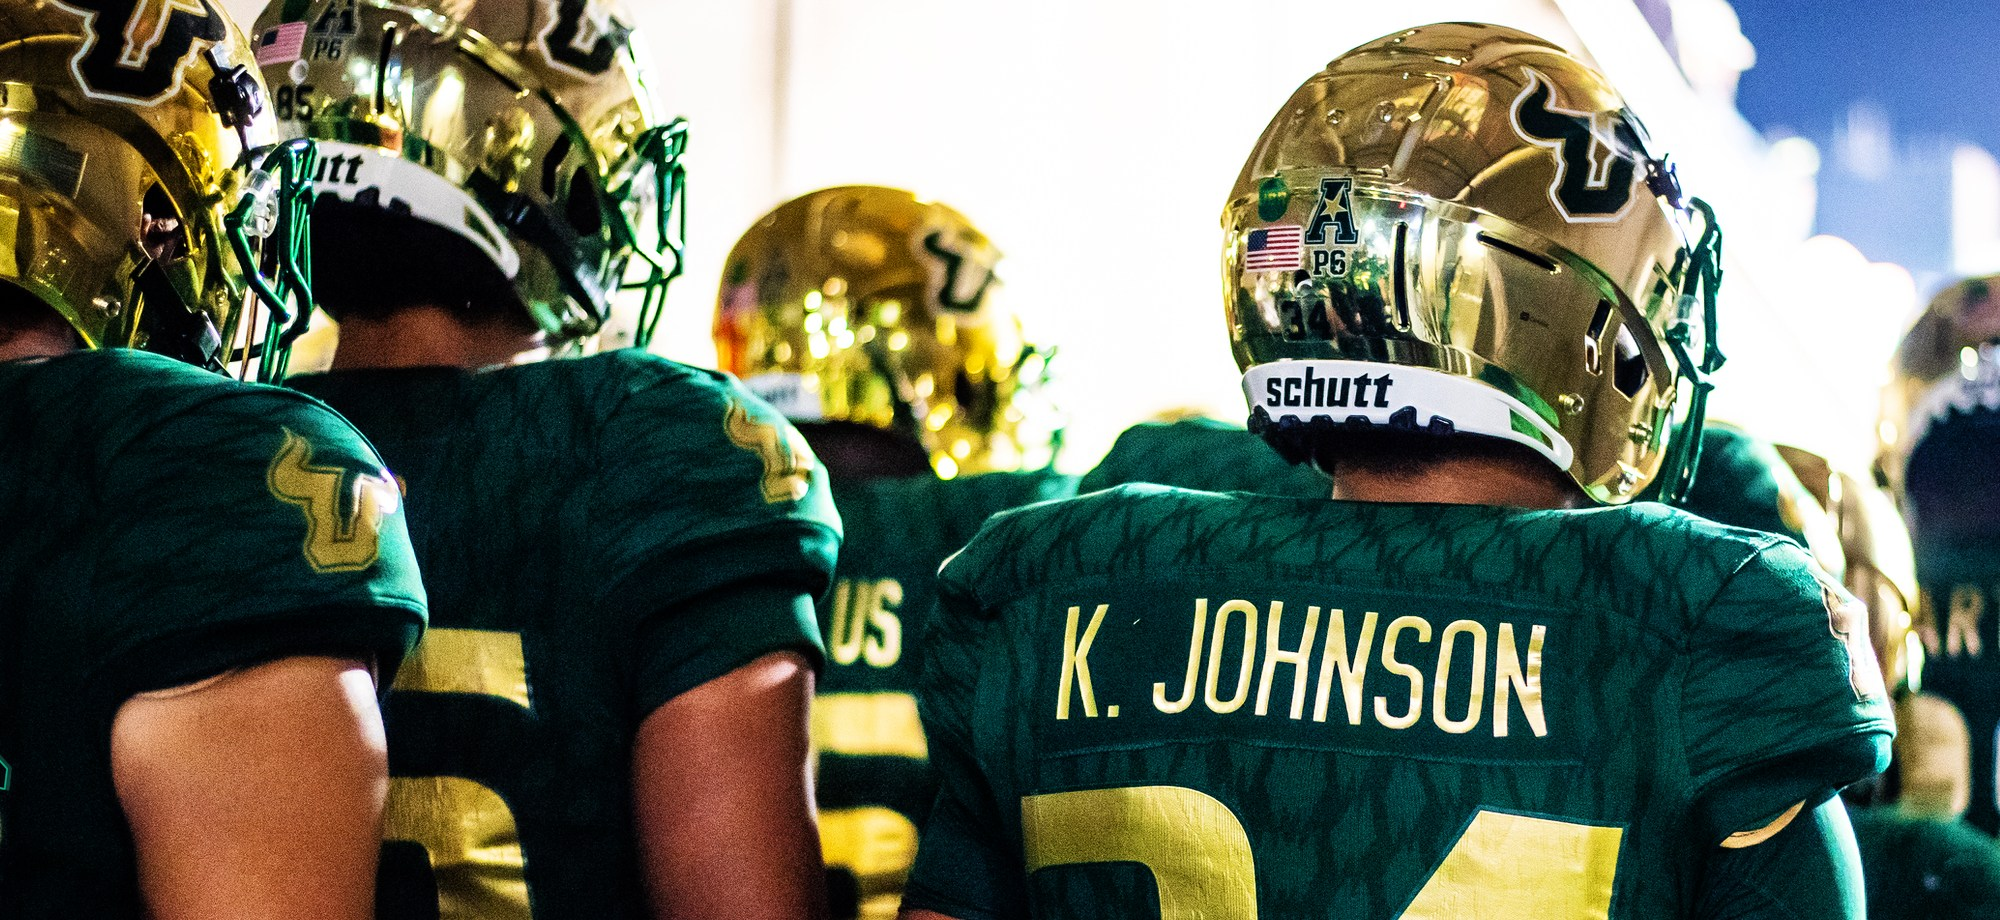 16 – Marshall vs. USF 2018 – USF LB Keirston Johnson Photo Page Featured Image by Dennis Akers – SoFloBulls.com